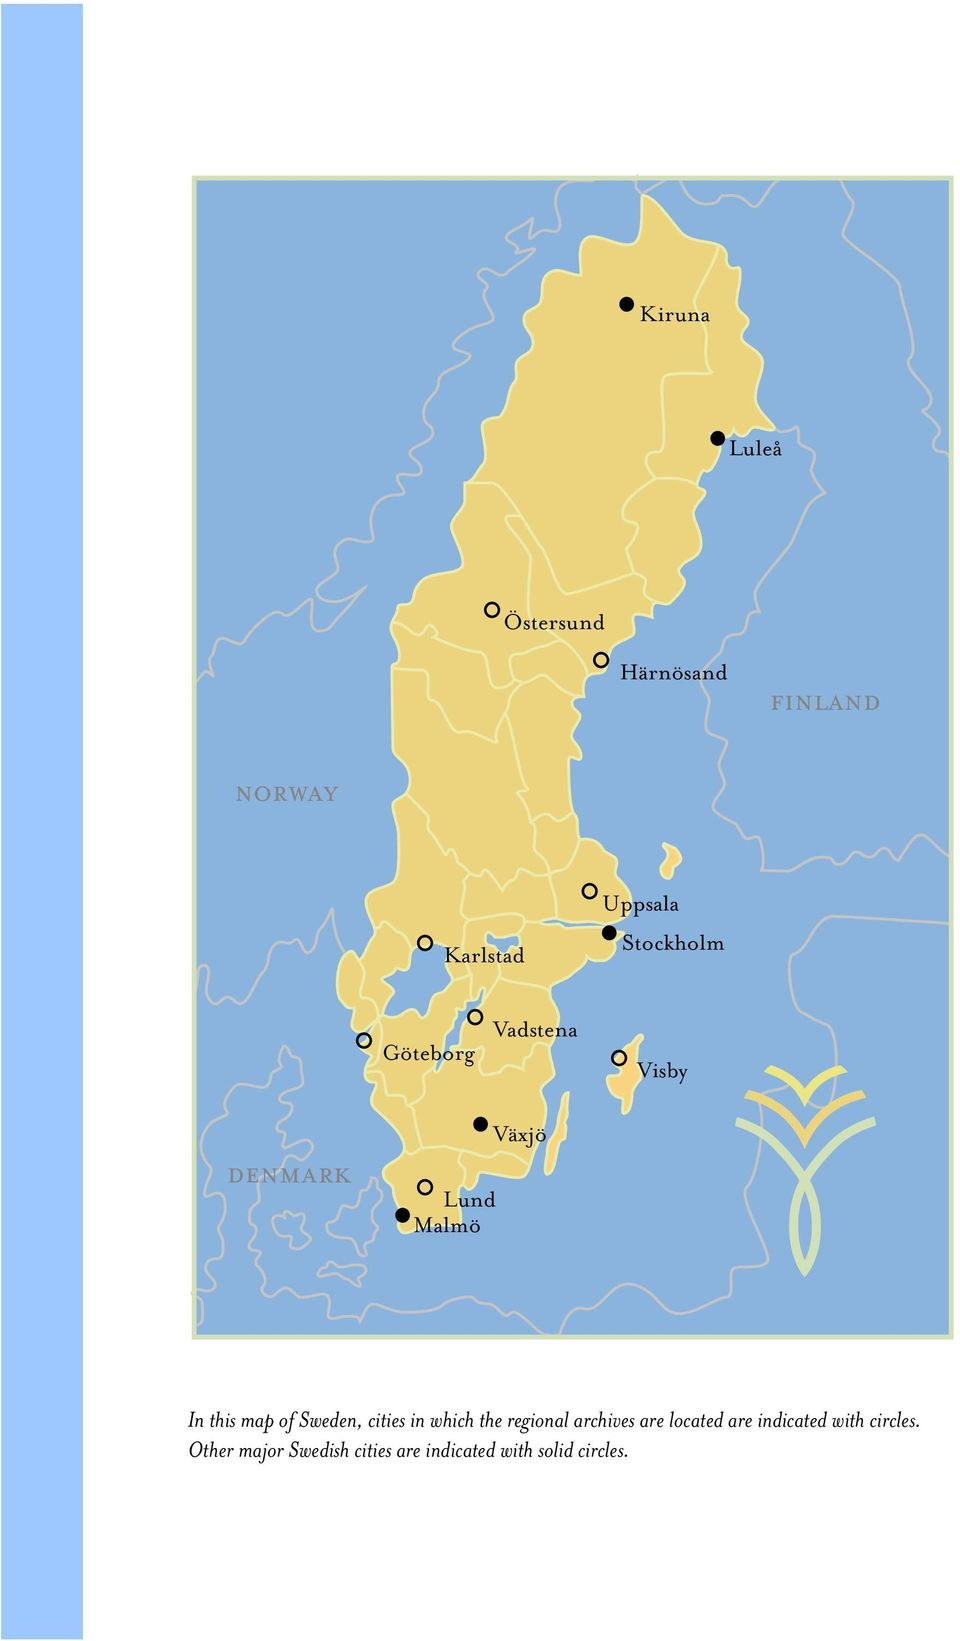 of Sweden, cities in which the regional archives are located are